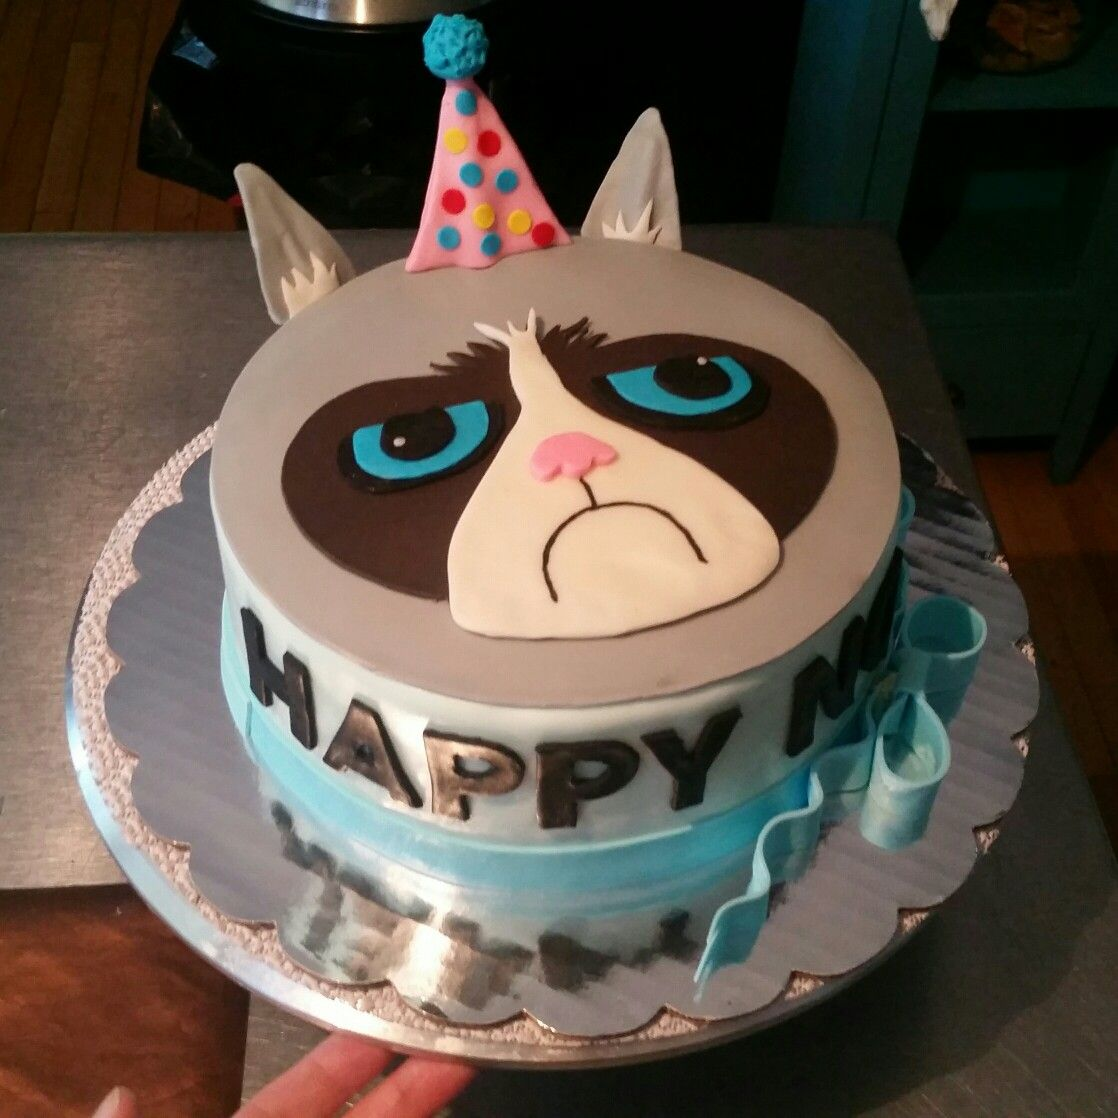 Grumpy Cat Cake Grumpy cat cakes, Birthday cake for cat